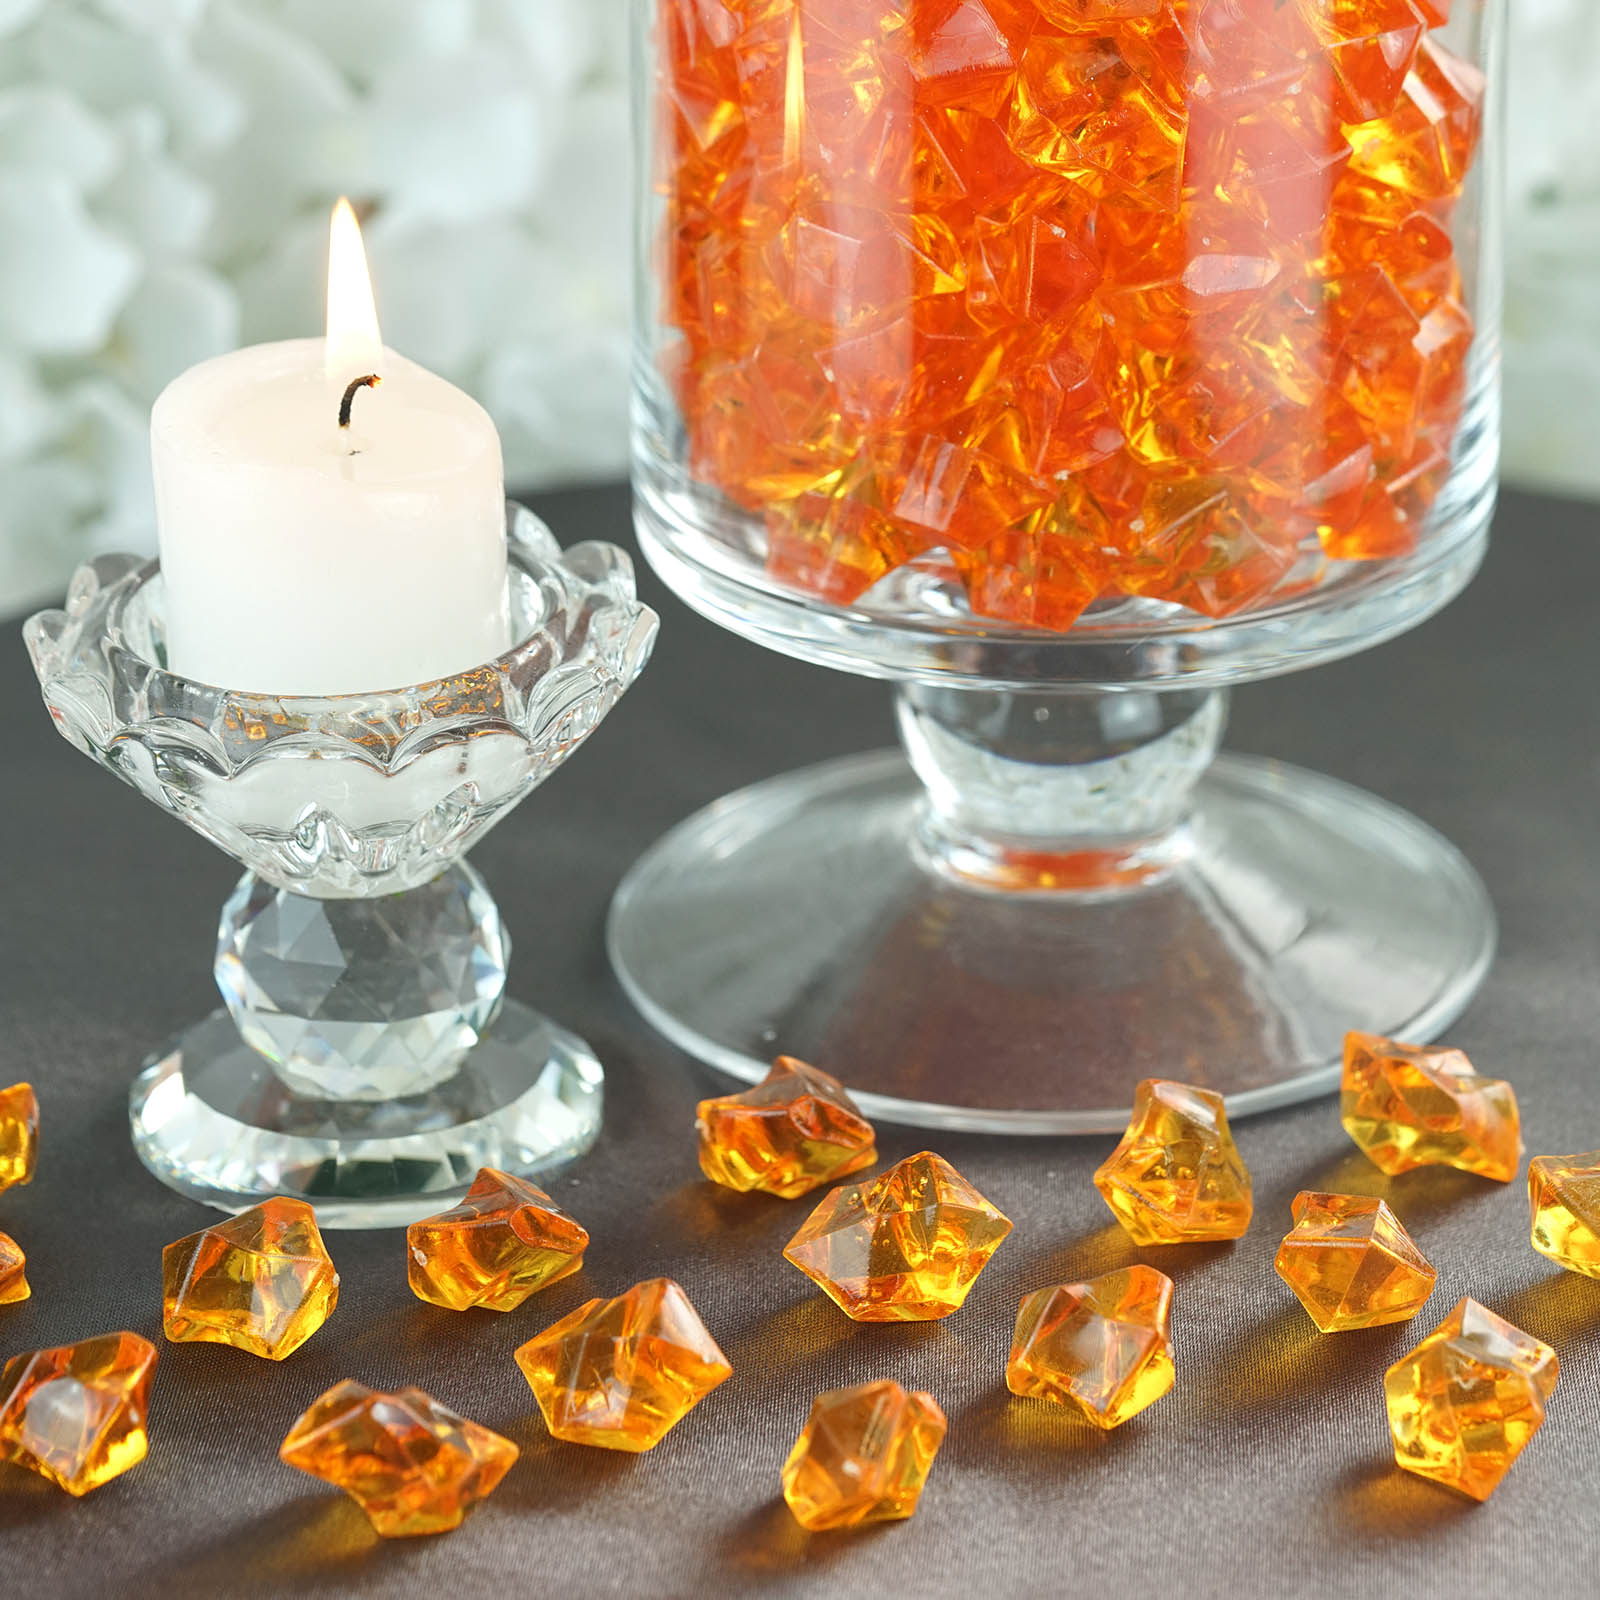 300-Acrylic-Ice-CRYSTAL-LIKE-Pieces-Wedding-Centerpieces-Decorations-Supplies thumbnail 43